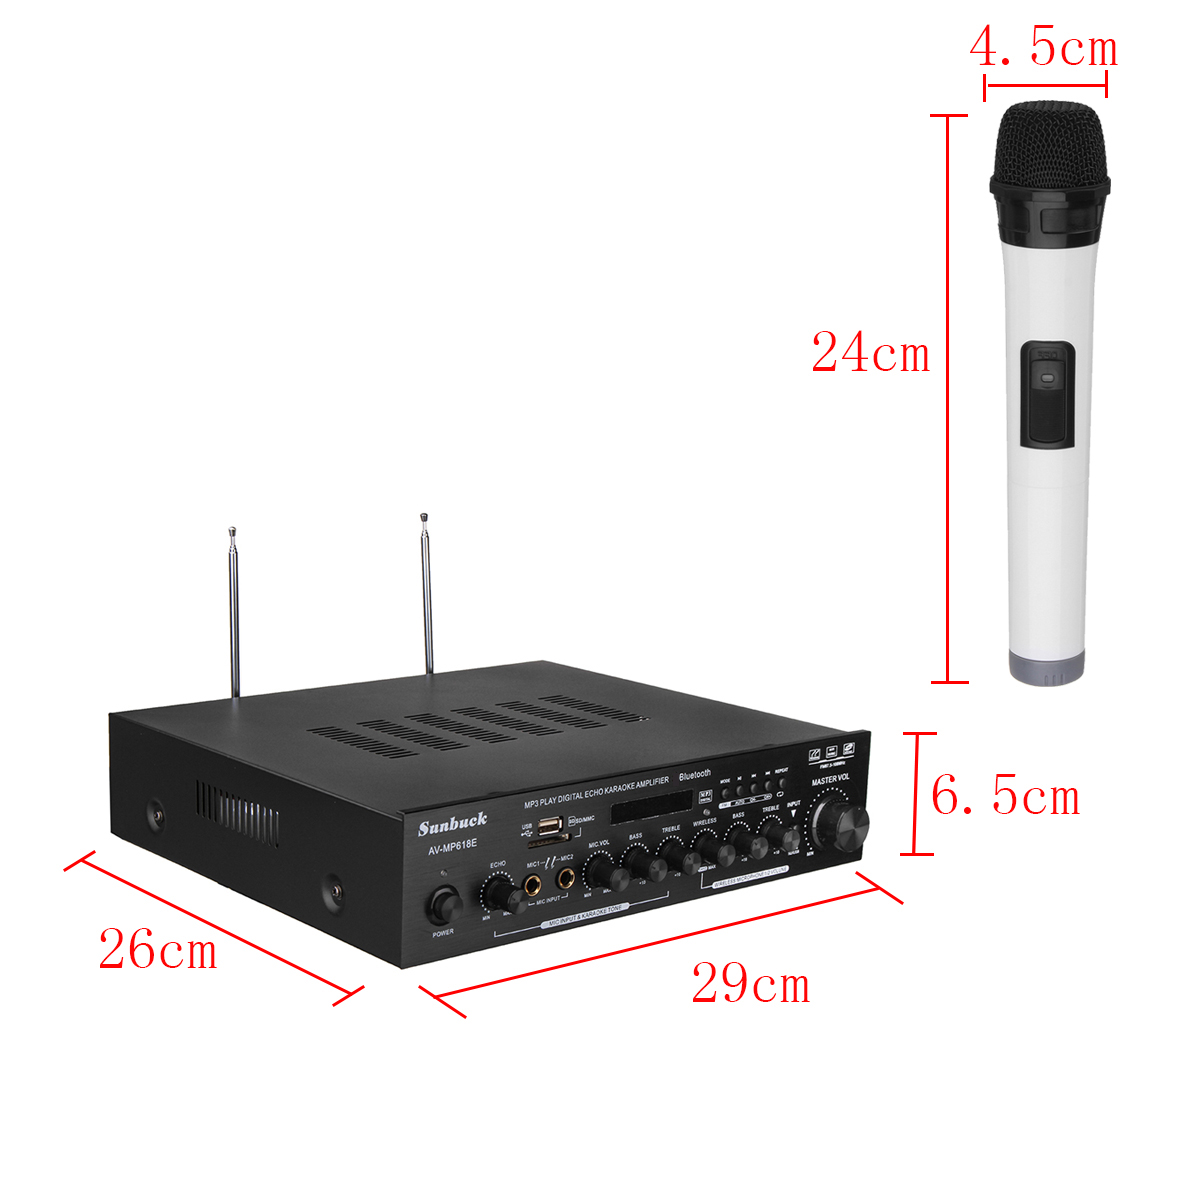 Sunbuck AV-MP618E 400W 2Ch bluetooth Digital Karaoke Amplifier Wireless Microphone Receiver System